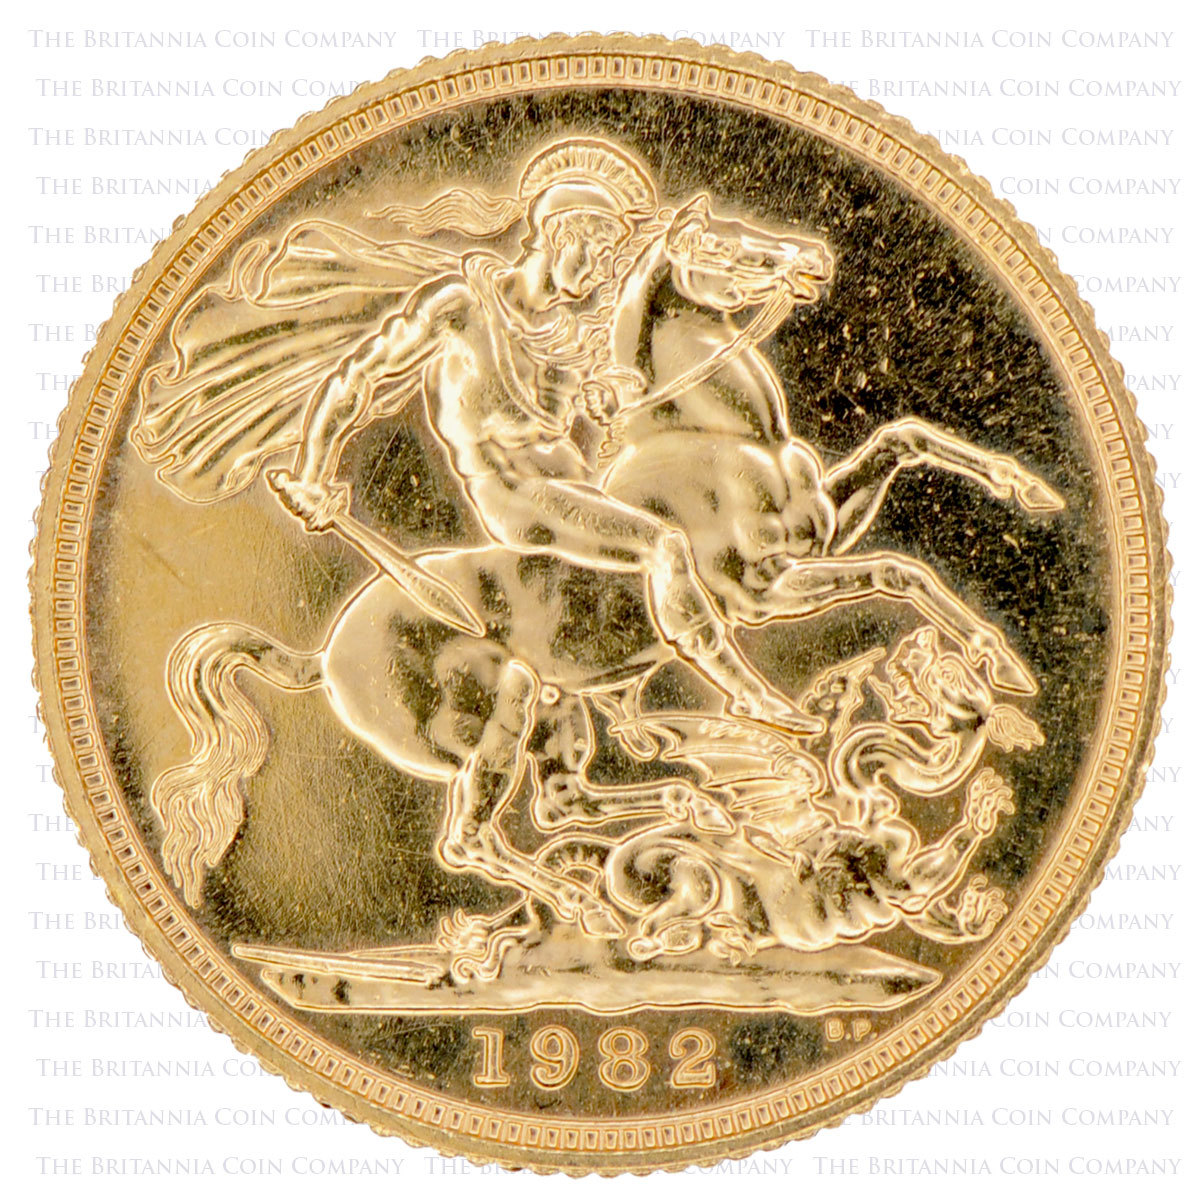 1982-gold-sovereign-reverse